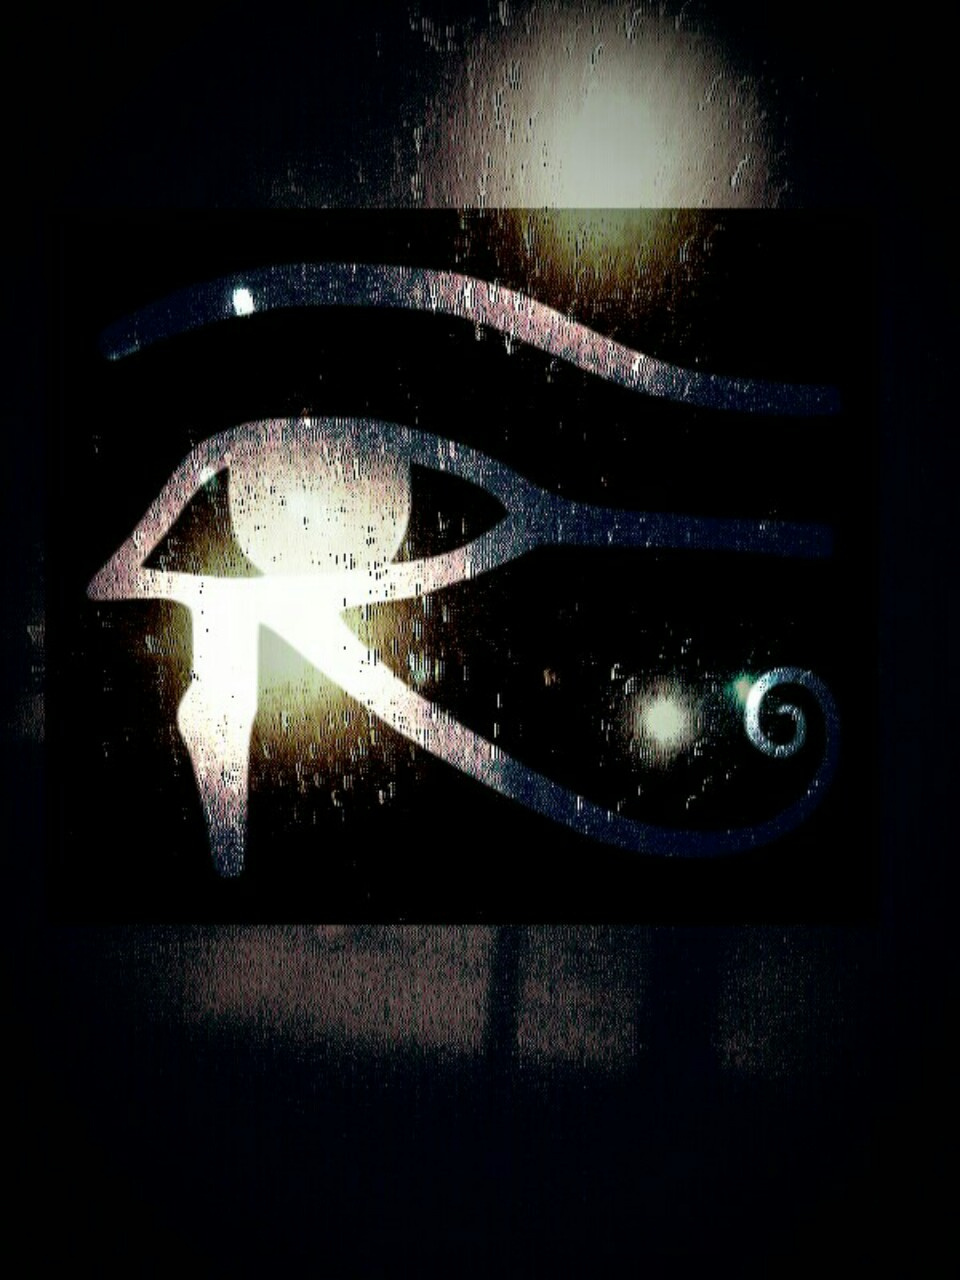 Diana-Karolina Ingo. Eye of Horus